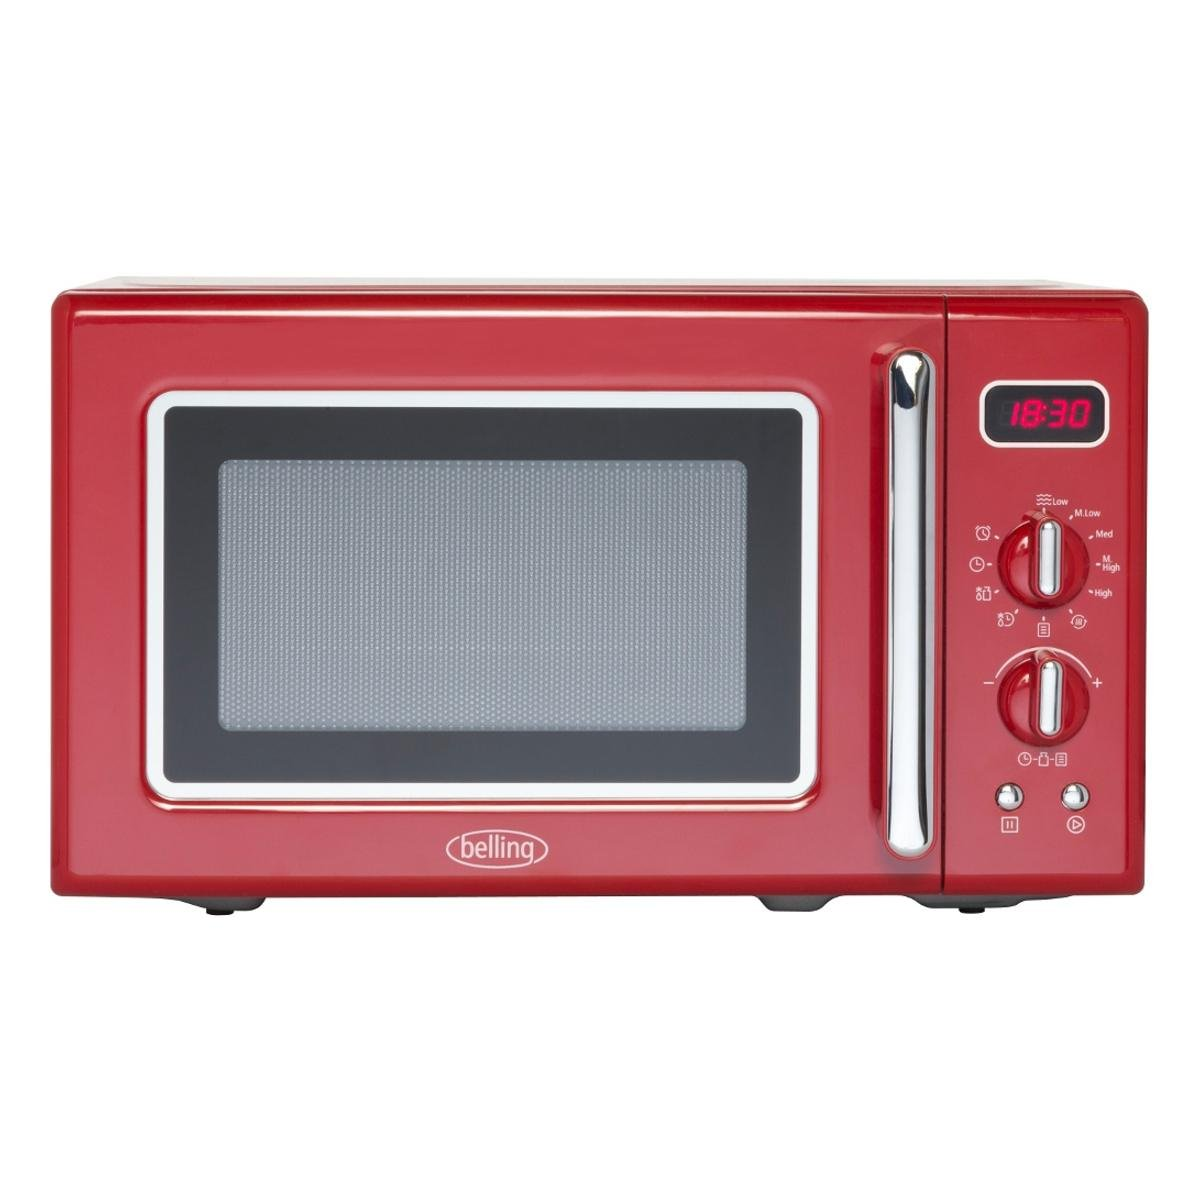 Belling 20ltr Microwave 800w in RED c/w Clock Timer & 5 Power Levels